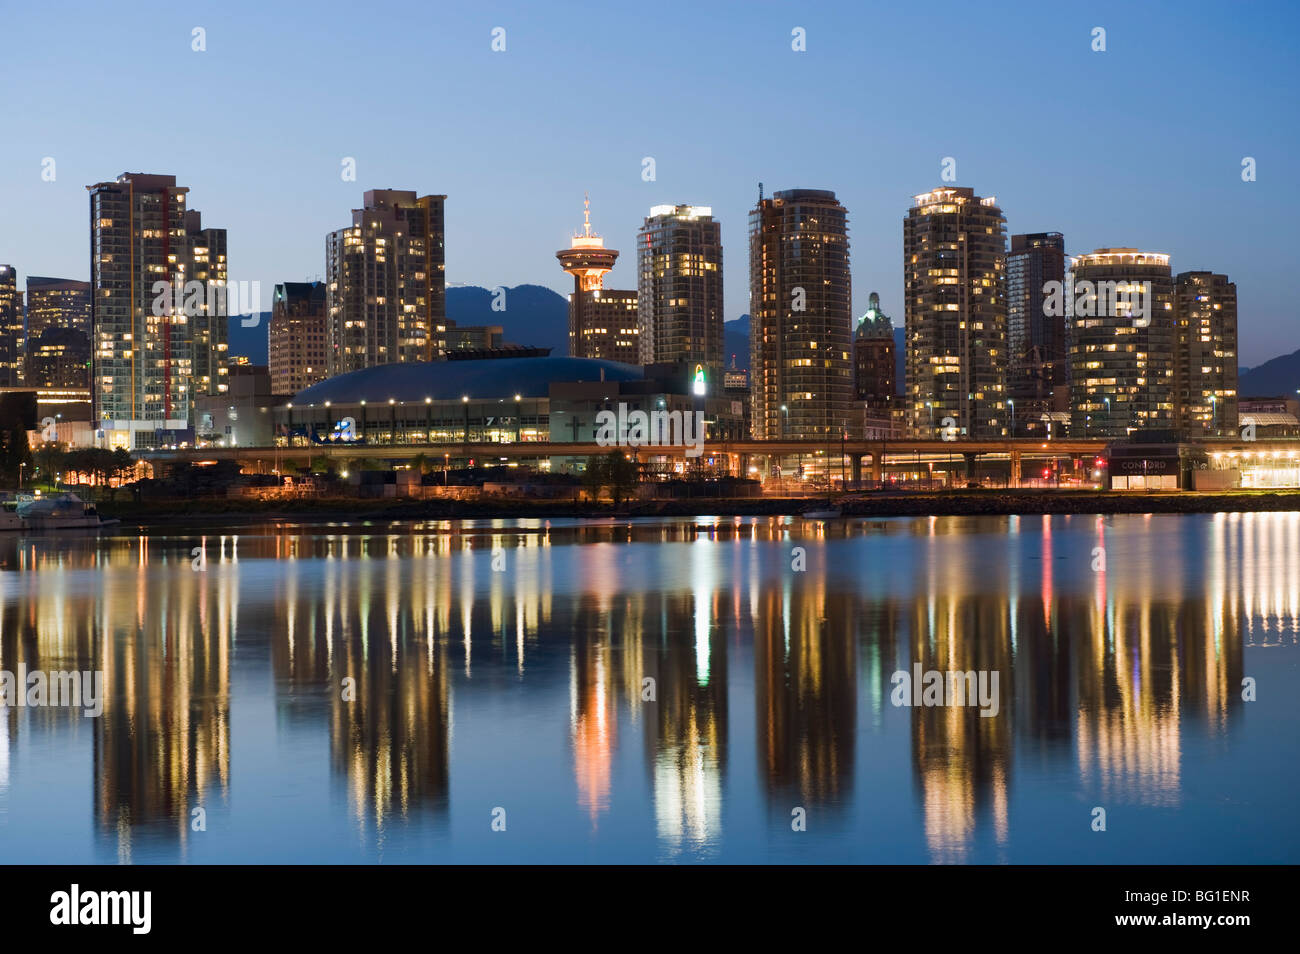 GM Place Stadium and residential city buildings, False Creek, Vancouver, British Columbia, Canada, North America - Stock Image